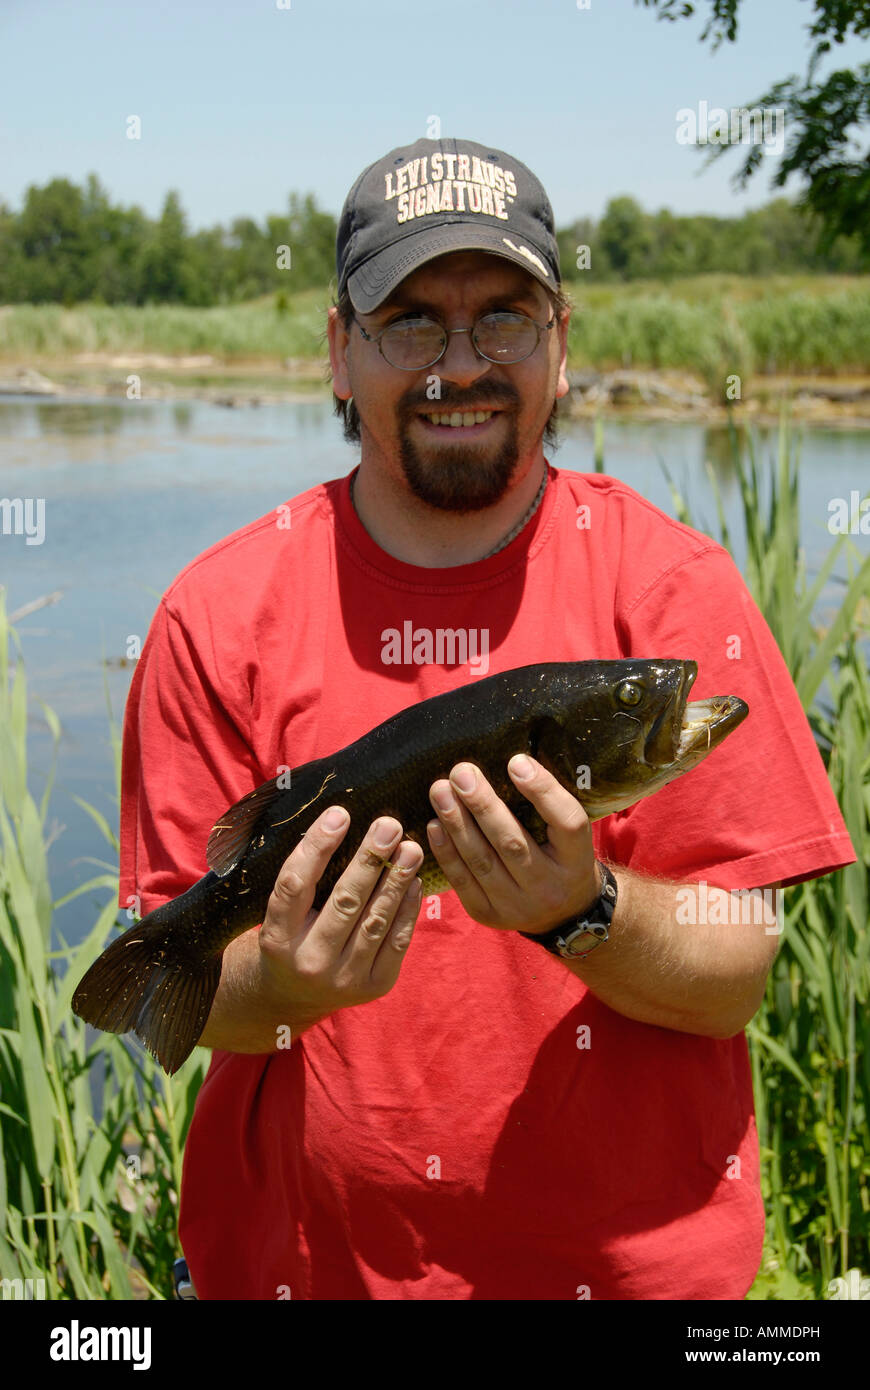 Large Mouth Bass Stock Photos & Large Mouth Bass Stock Images - Alamy